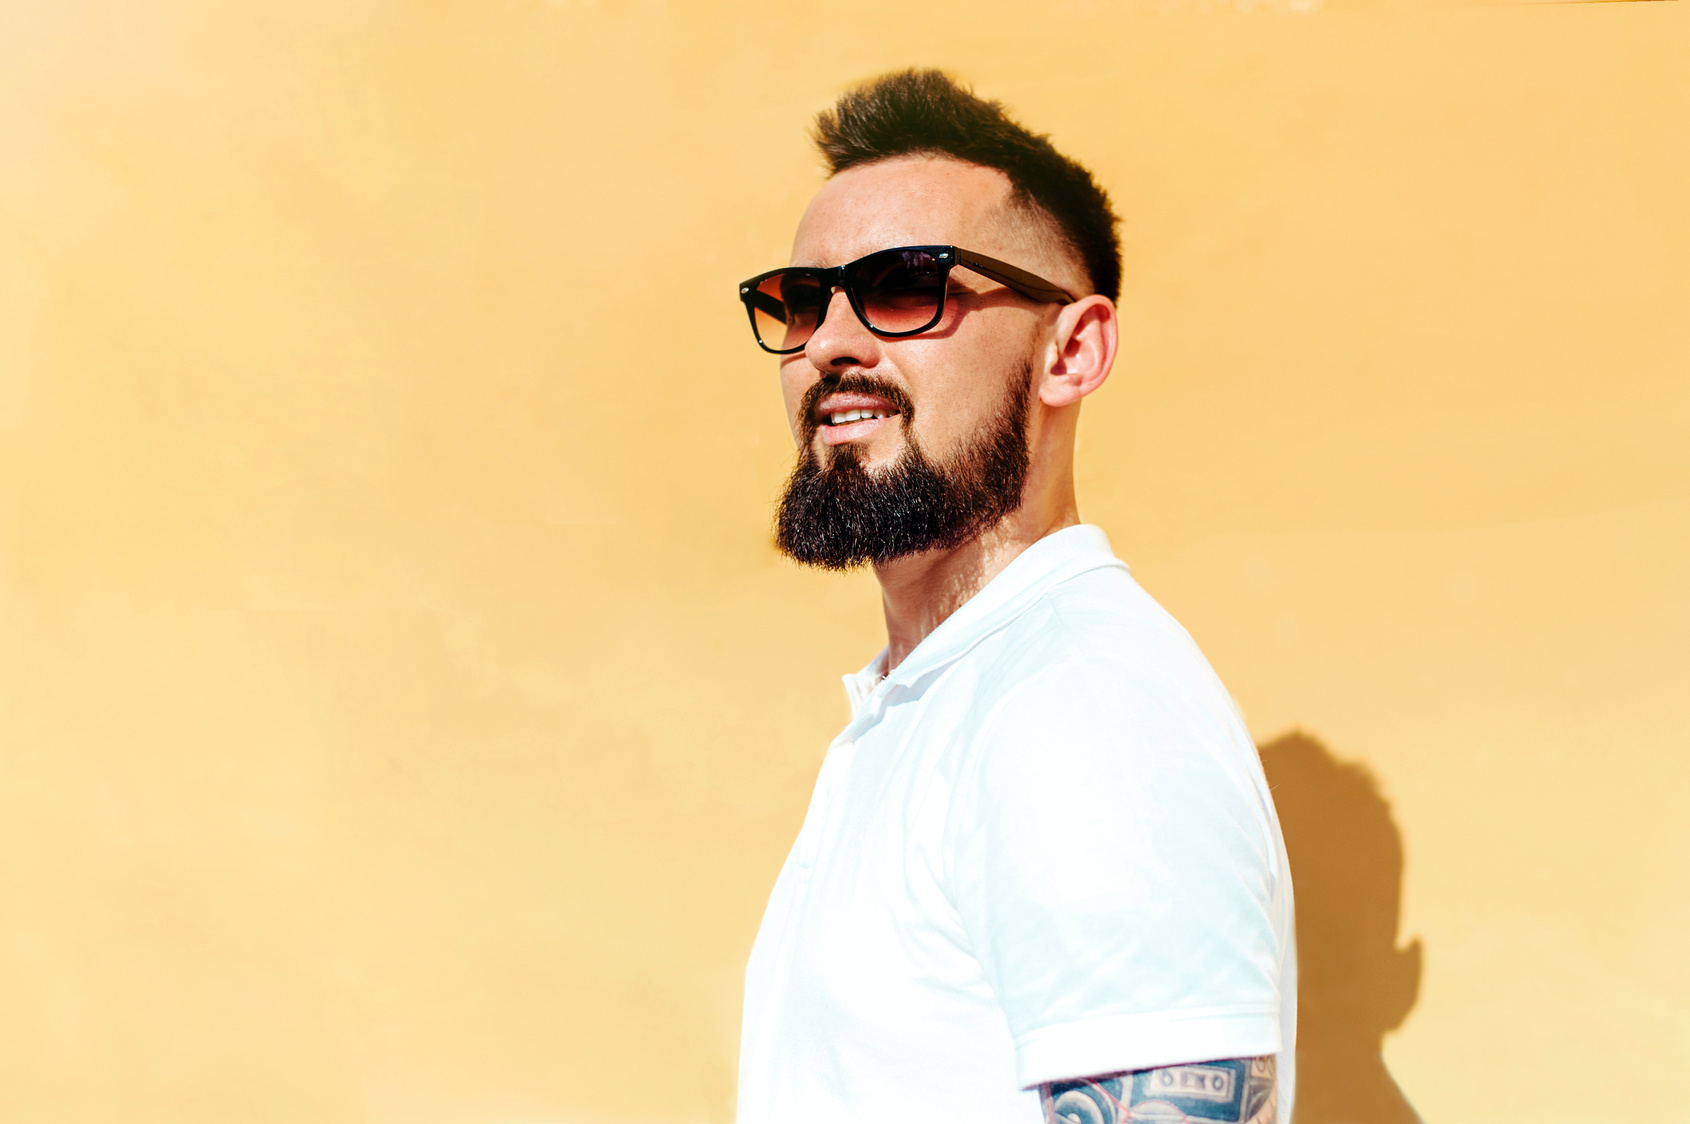 That Funny Relationship Between Sunglasses and Beards